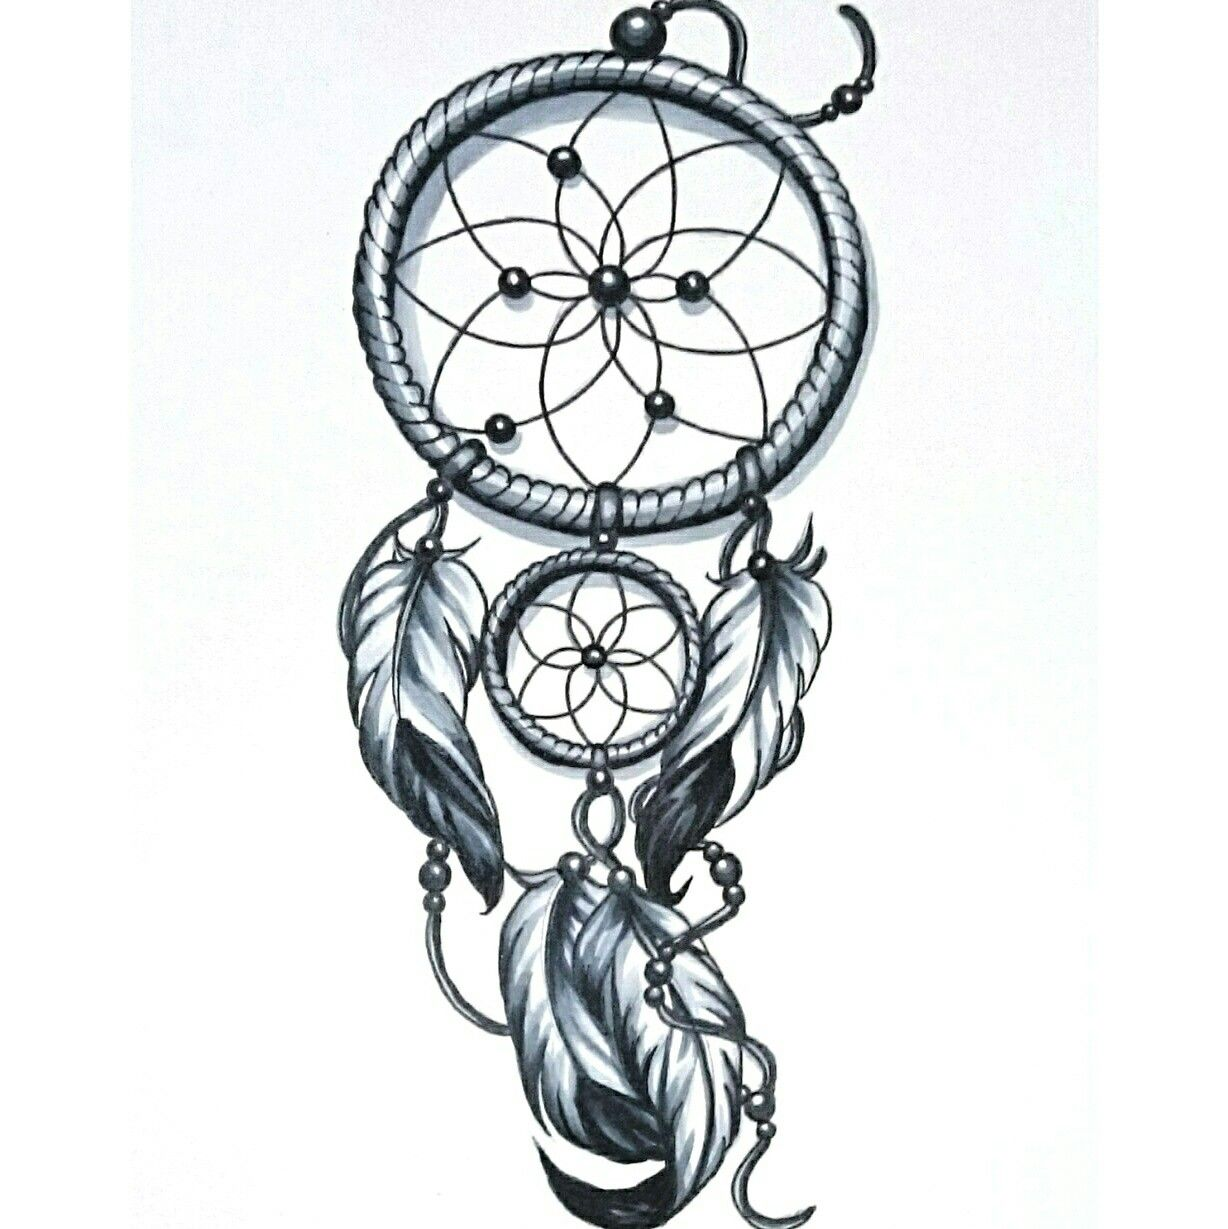 Skinevolutiontattoo konomi konomiangel tattoo design for Dreamcatcher tattoo template